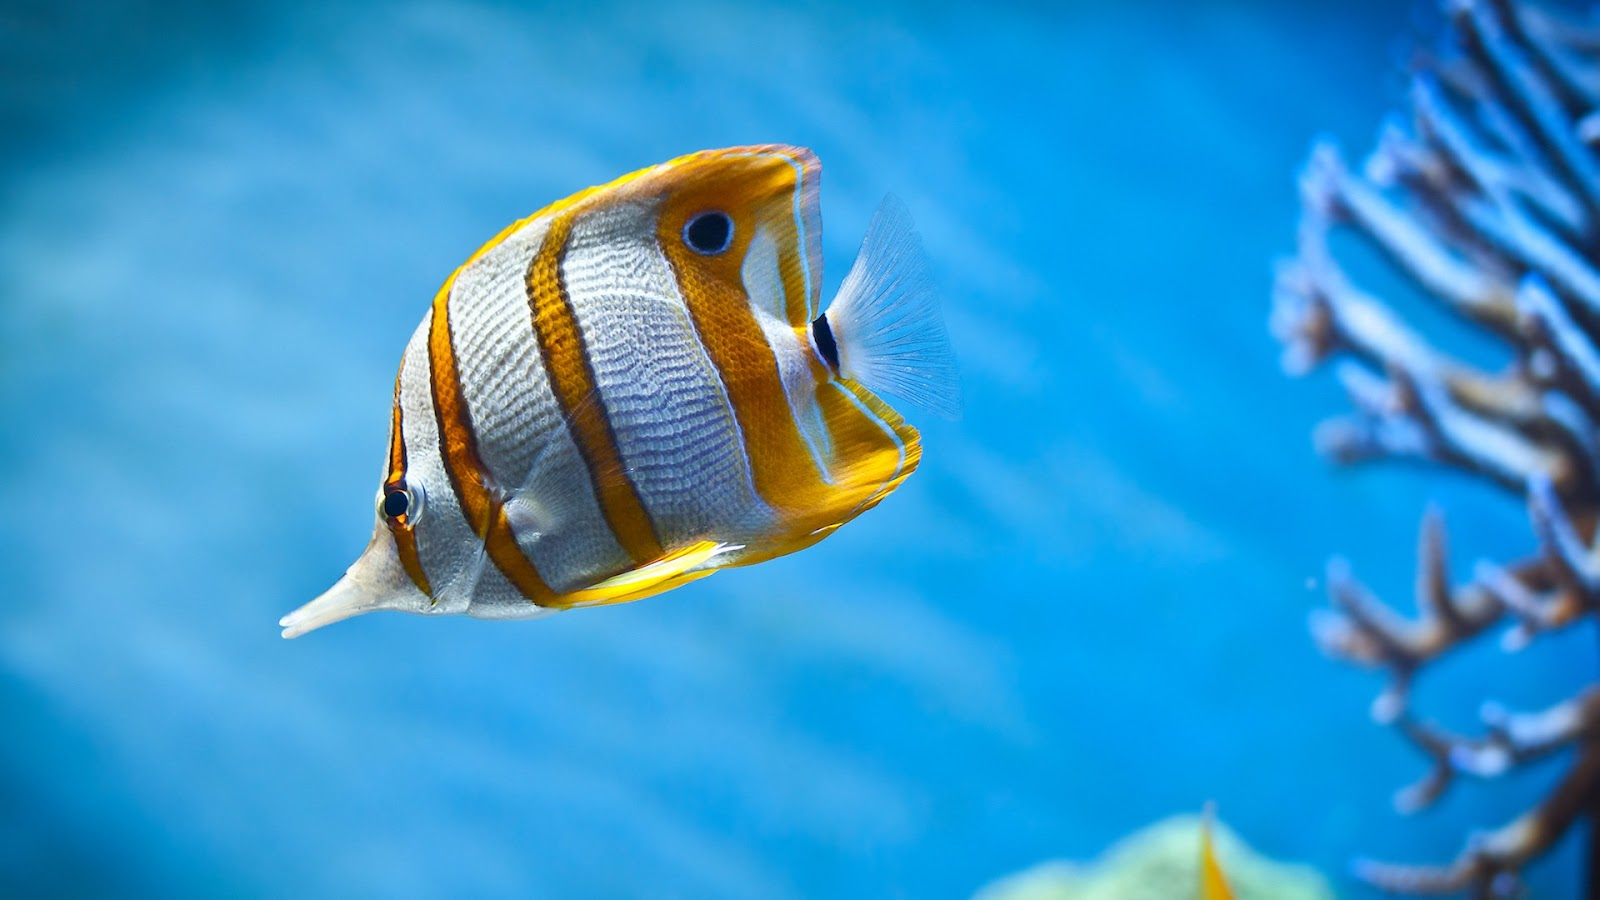 Wallpaper iphone cupang - Beautiful Fish Pictures Wallpaper